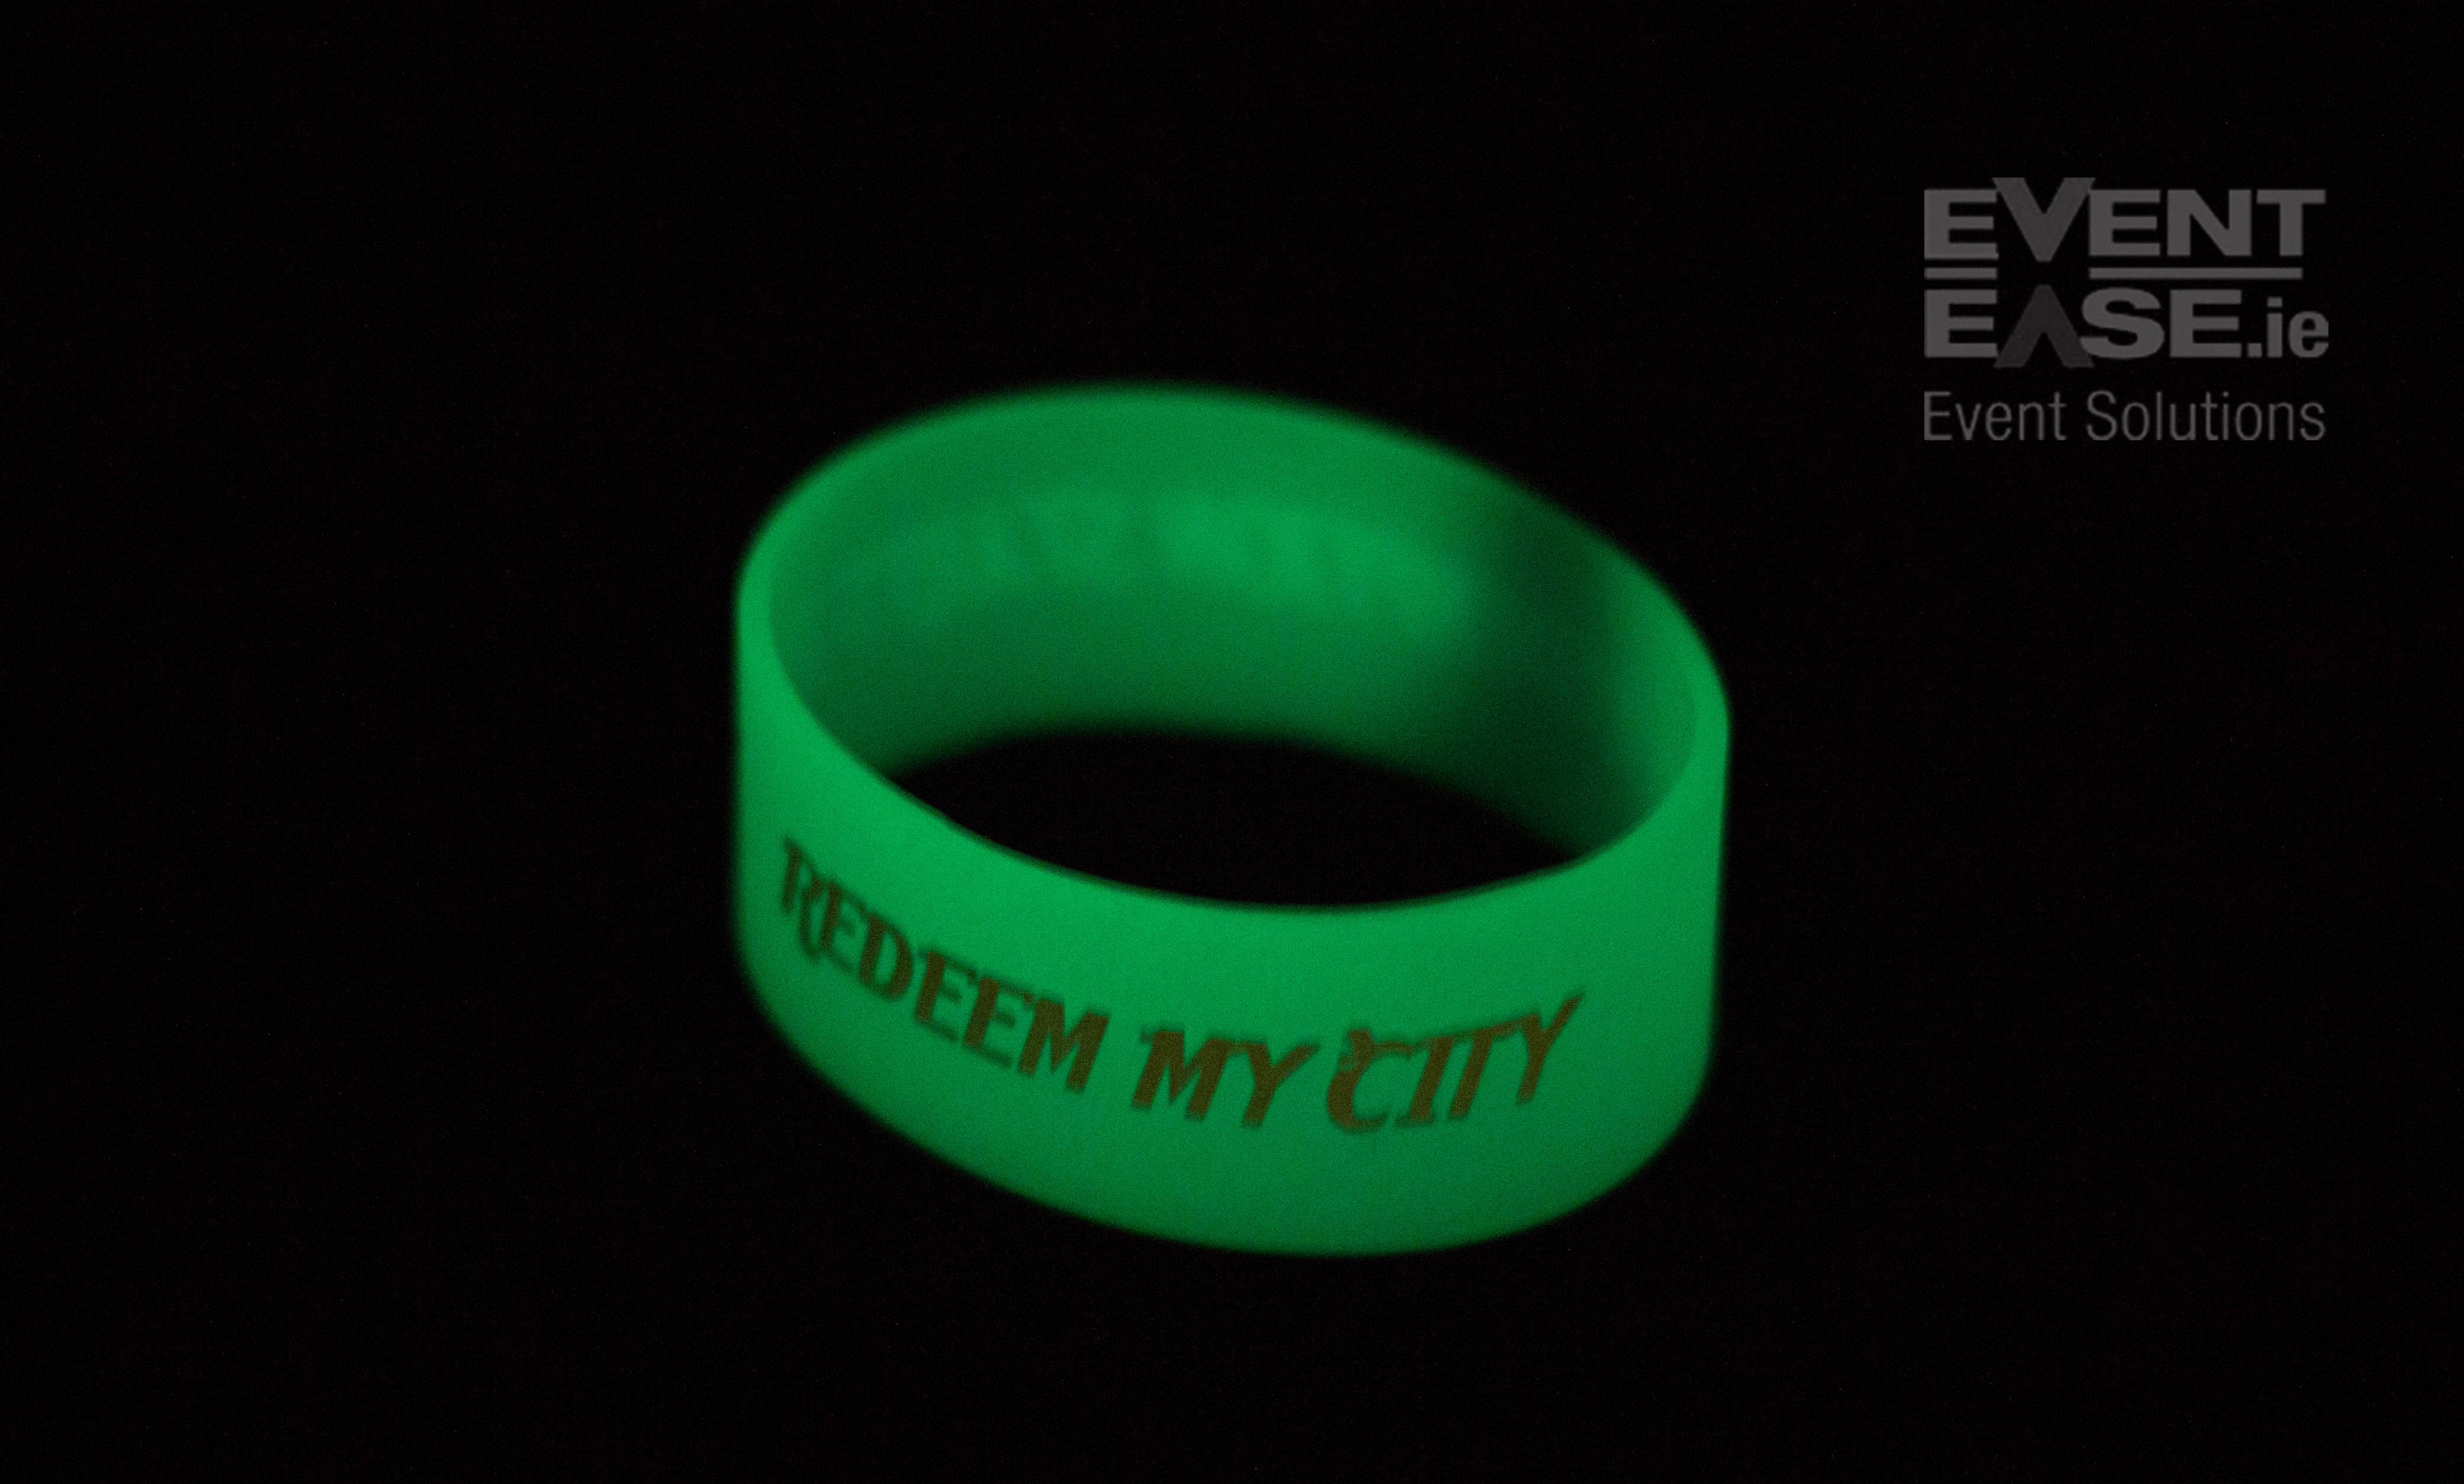 Glow in the dark 1 inch